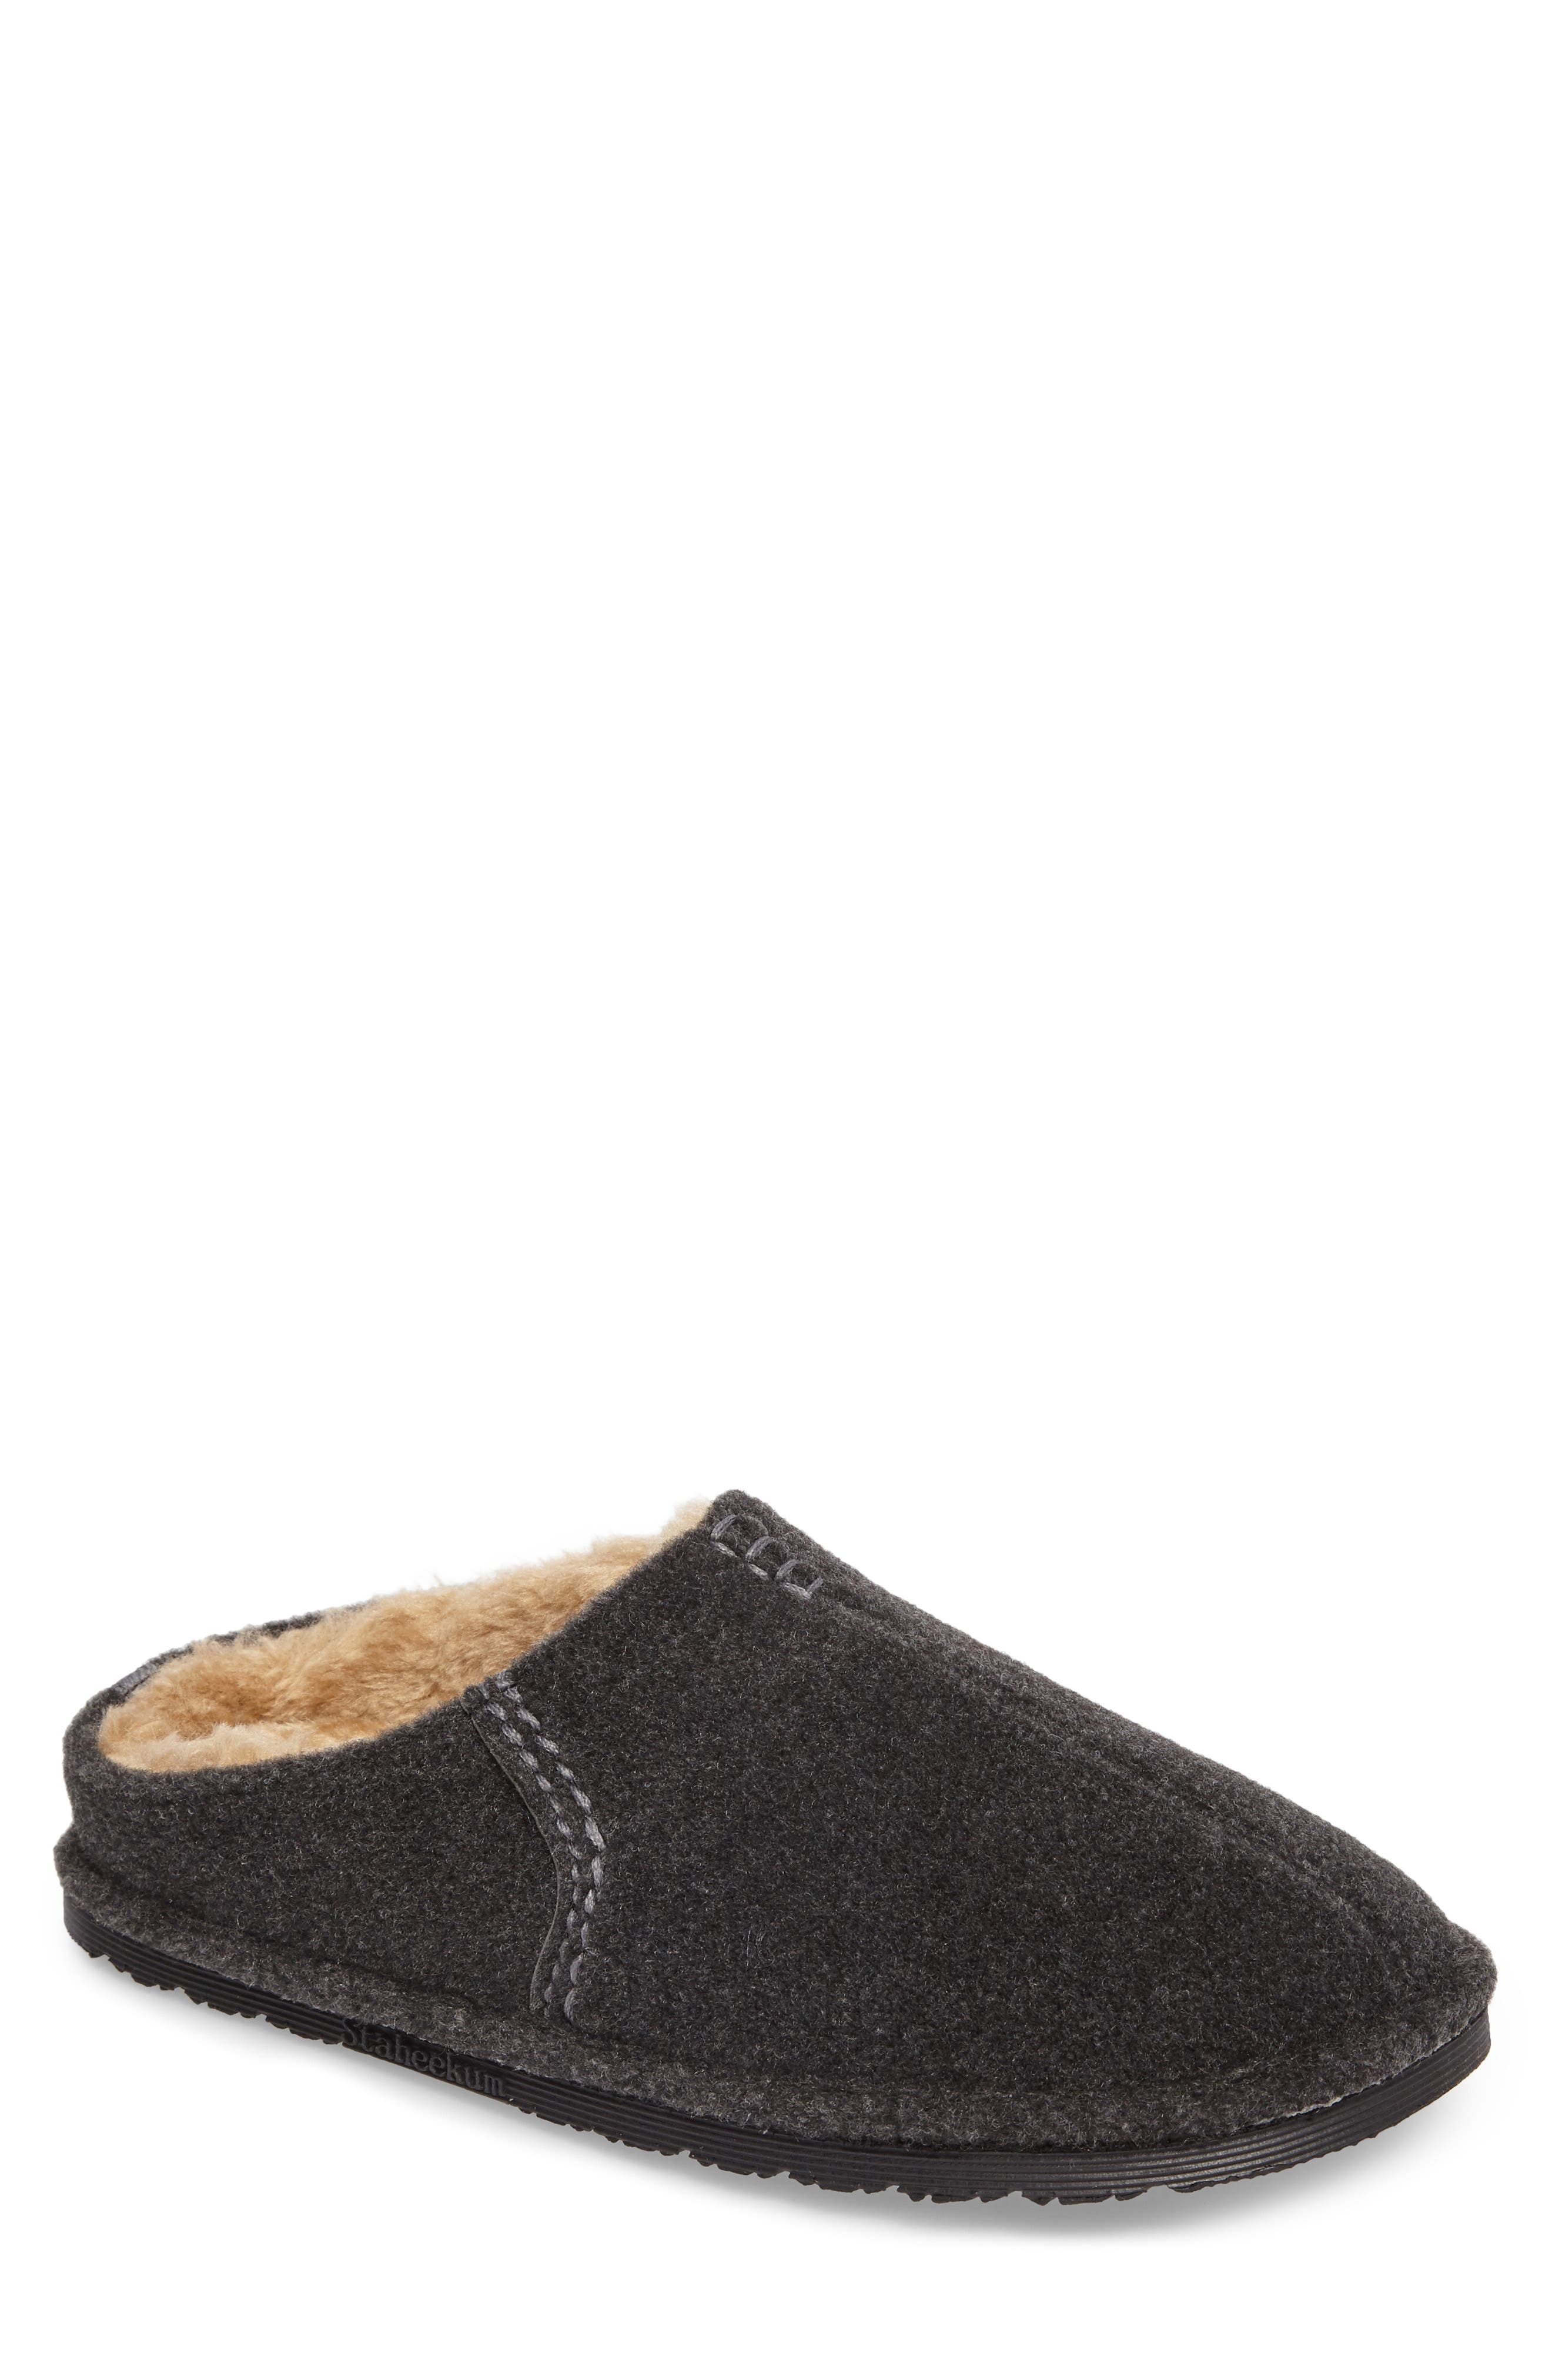 Timber Scuff Slipper,                         Main,                         color, Charcoal Felt/ Polyester